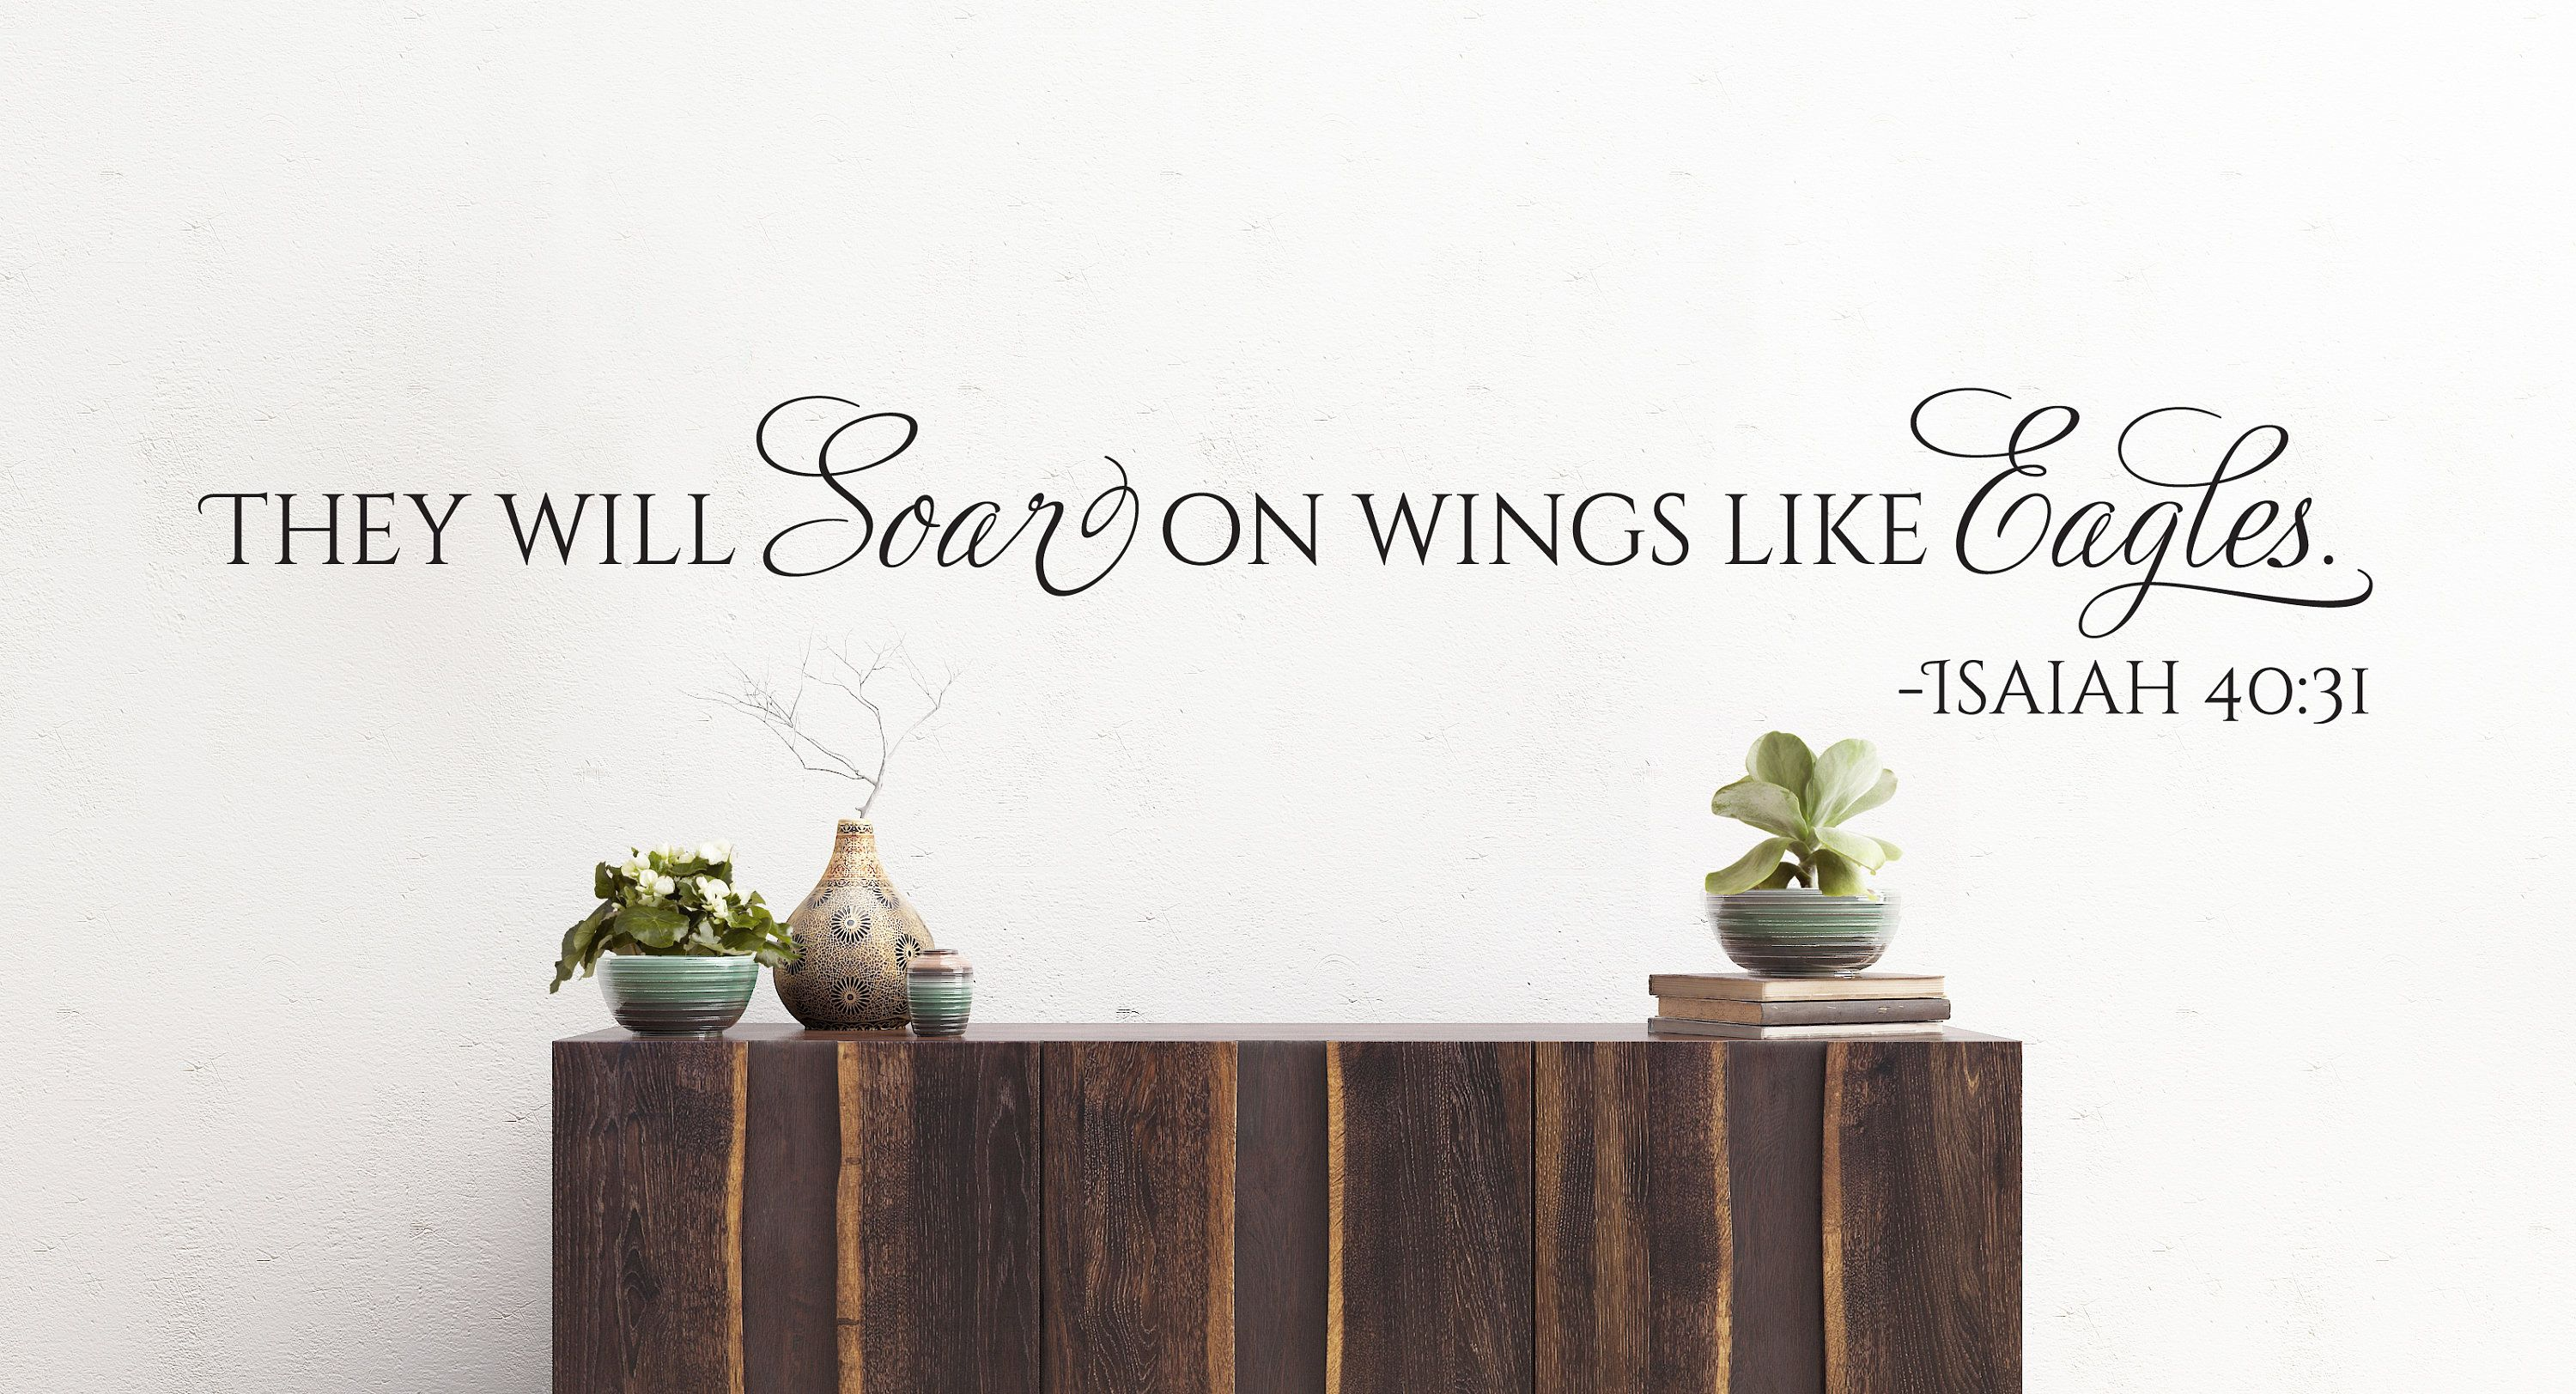 Vinyl Wall Decal | Isaiah 4031 |  They will soar on wings like eagles.  | Christian Wall Art Decor & Vinyl Wall Decal | Isaiah 40:31 |